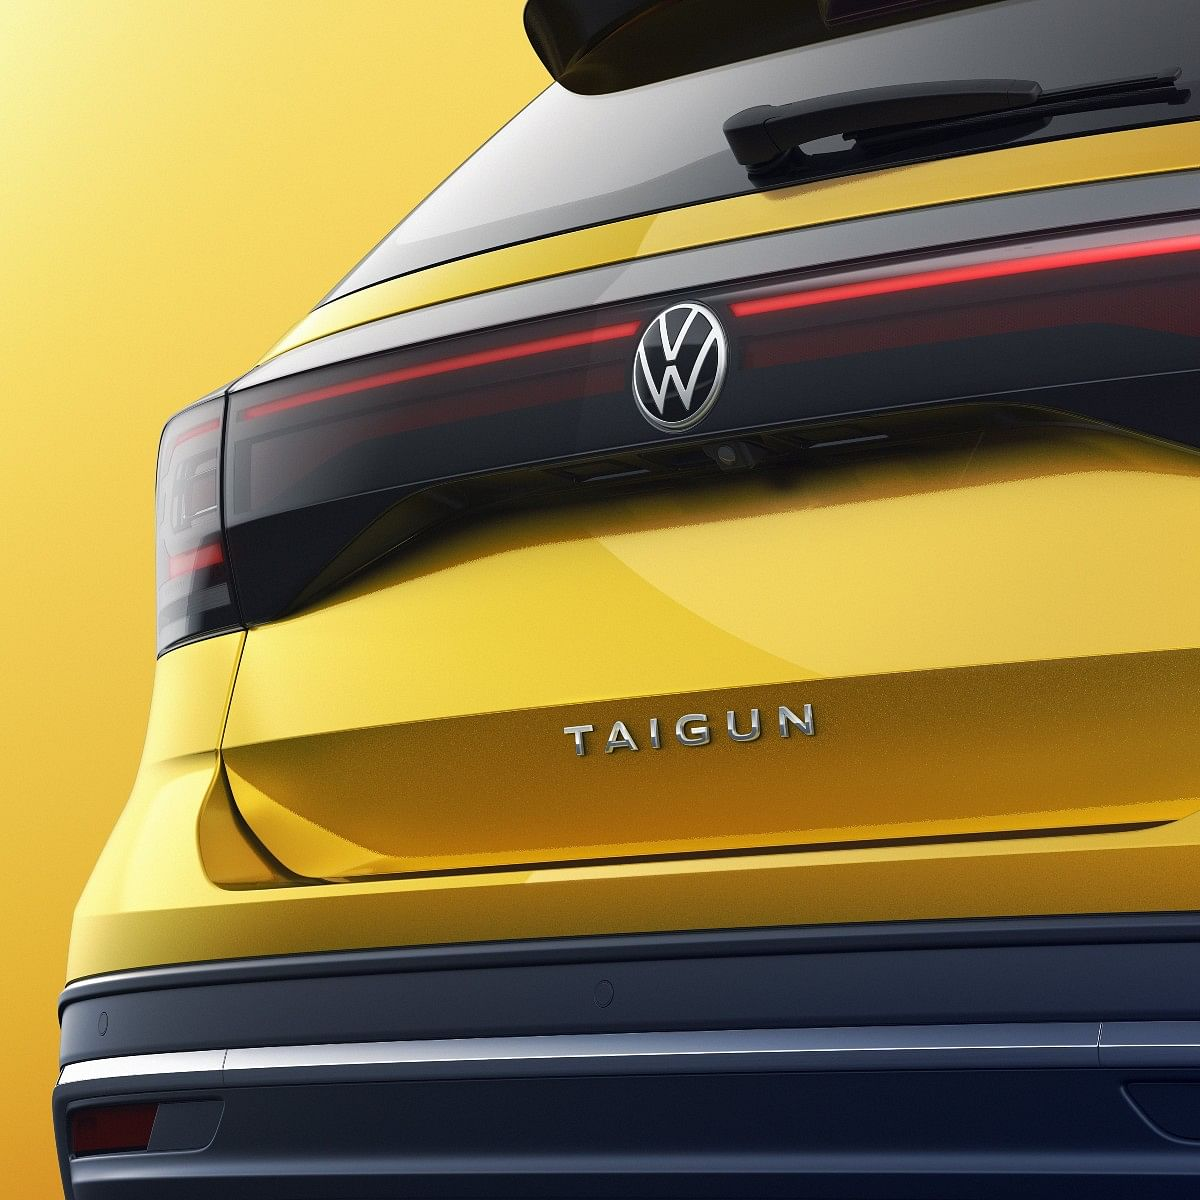 The Volkswagen Taigun gets a full-width LED light bar at the rear